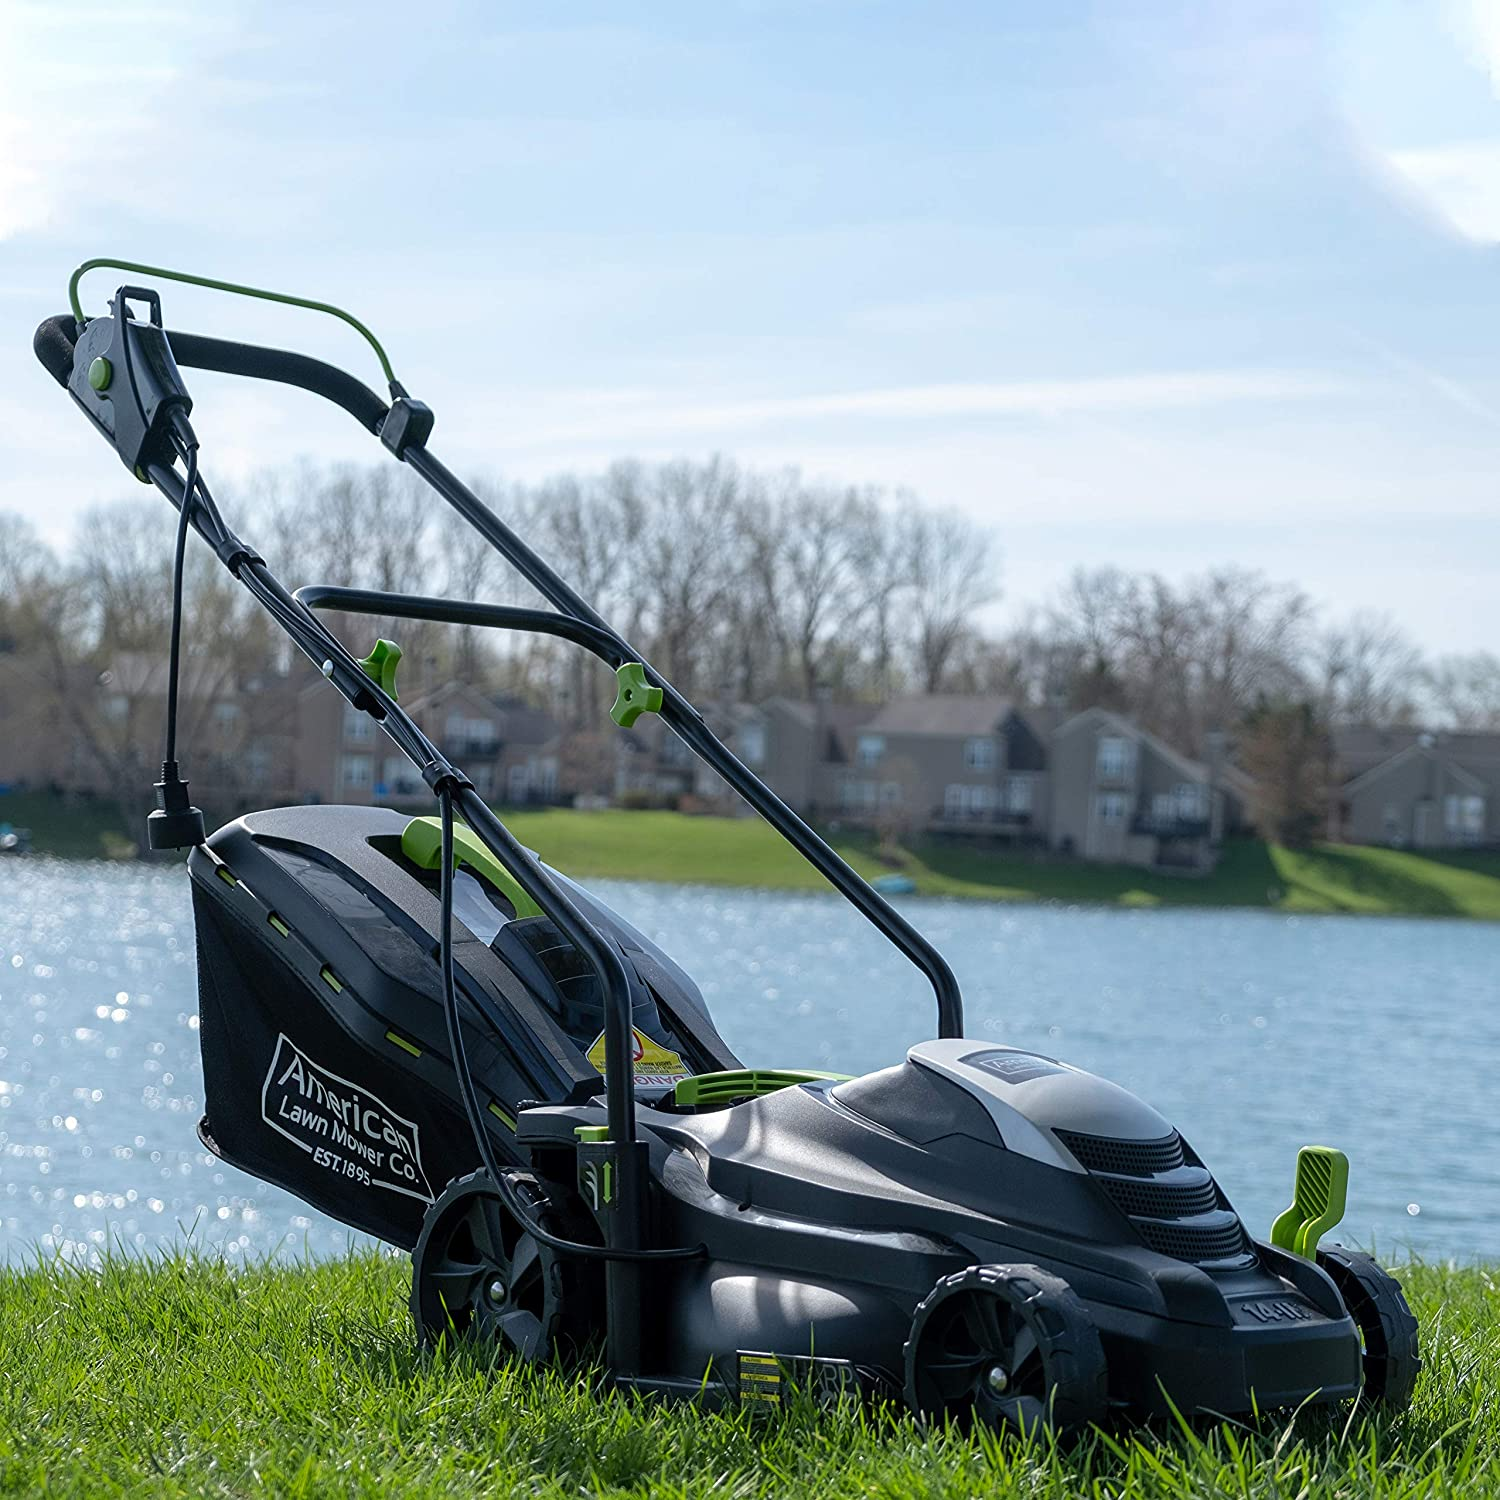 American Lawn Mower Company 50514 Review - Should you get one?